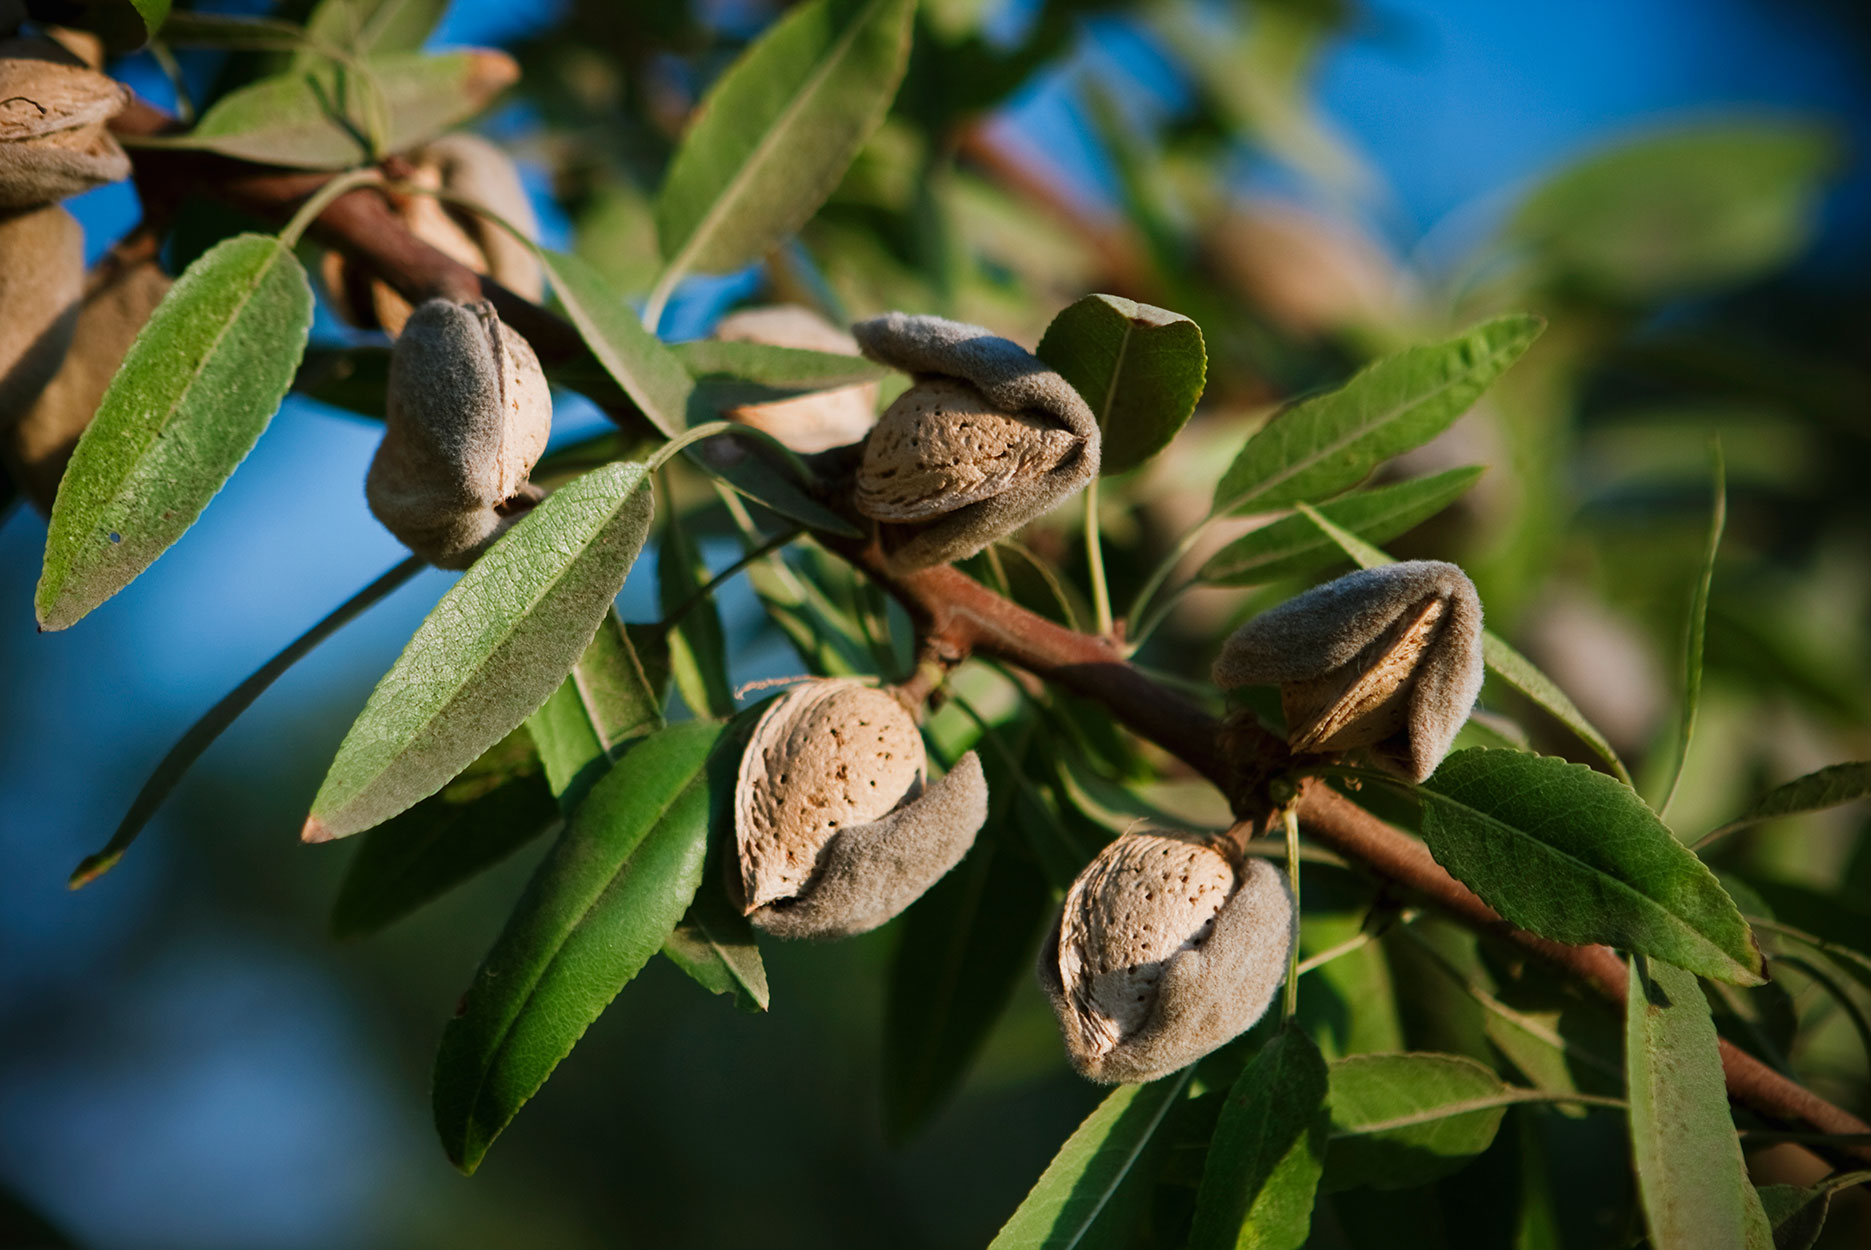 Agriculture - Close-up of mature almonds on the tree with hulls cracked open and ready for harvest in late afternoon sunlight / near Dinuba, California, USA.